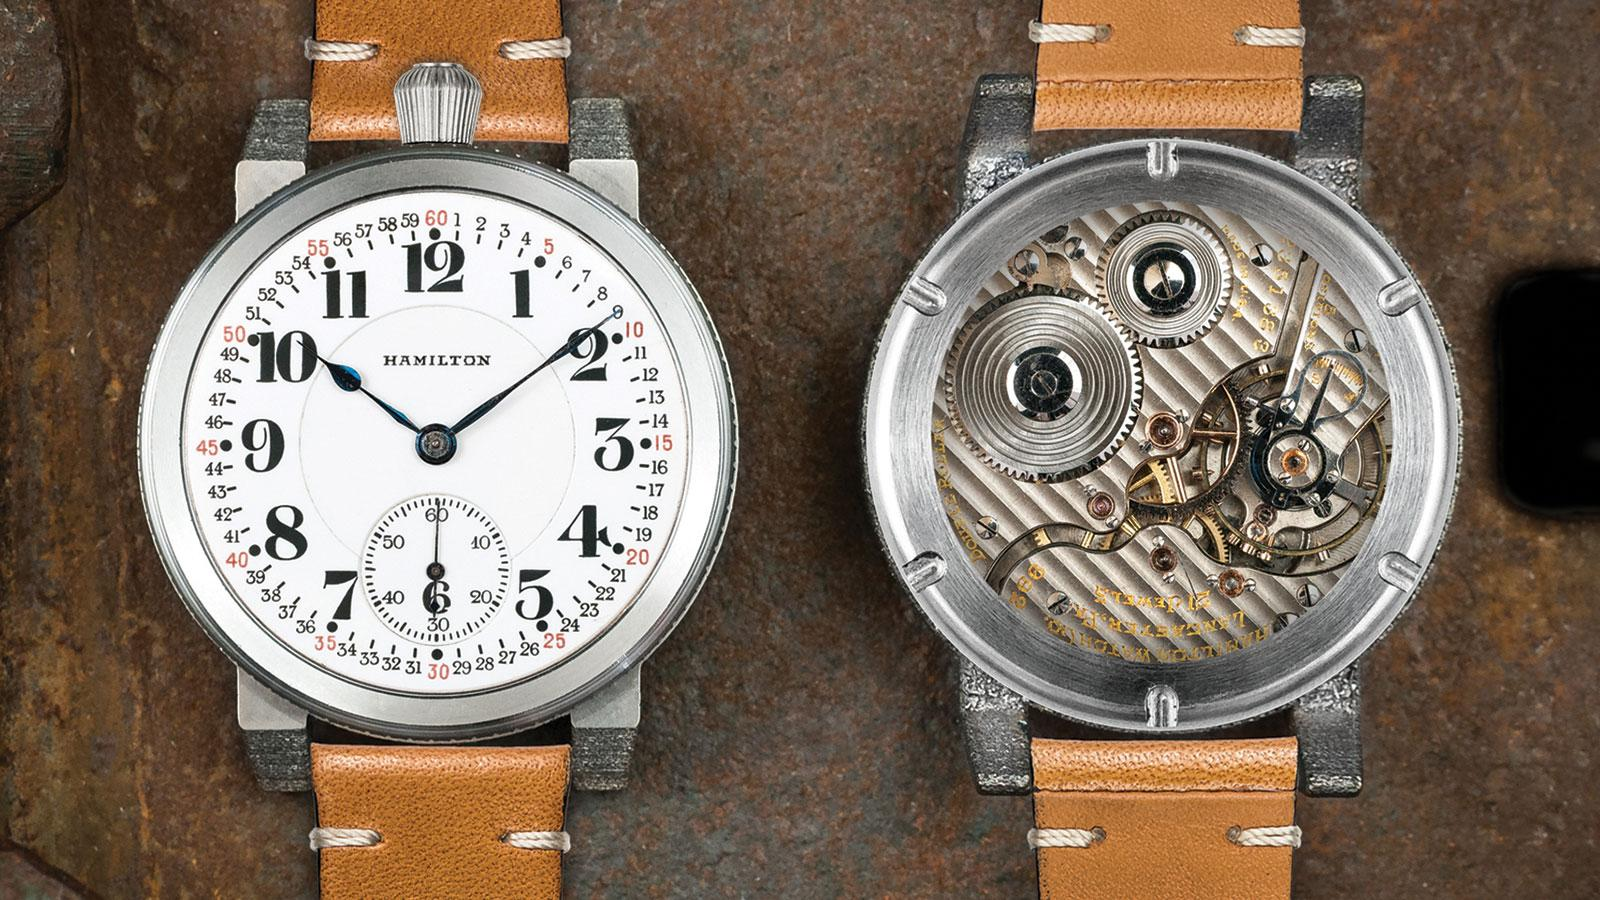 Vortic Blends Old and New To Produce An All-American Watch